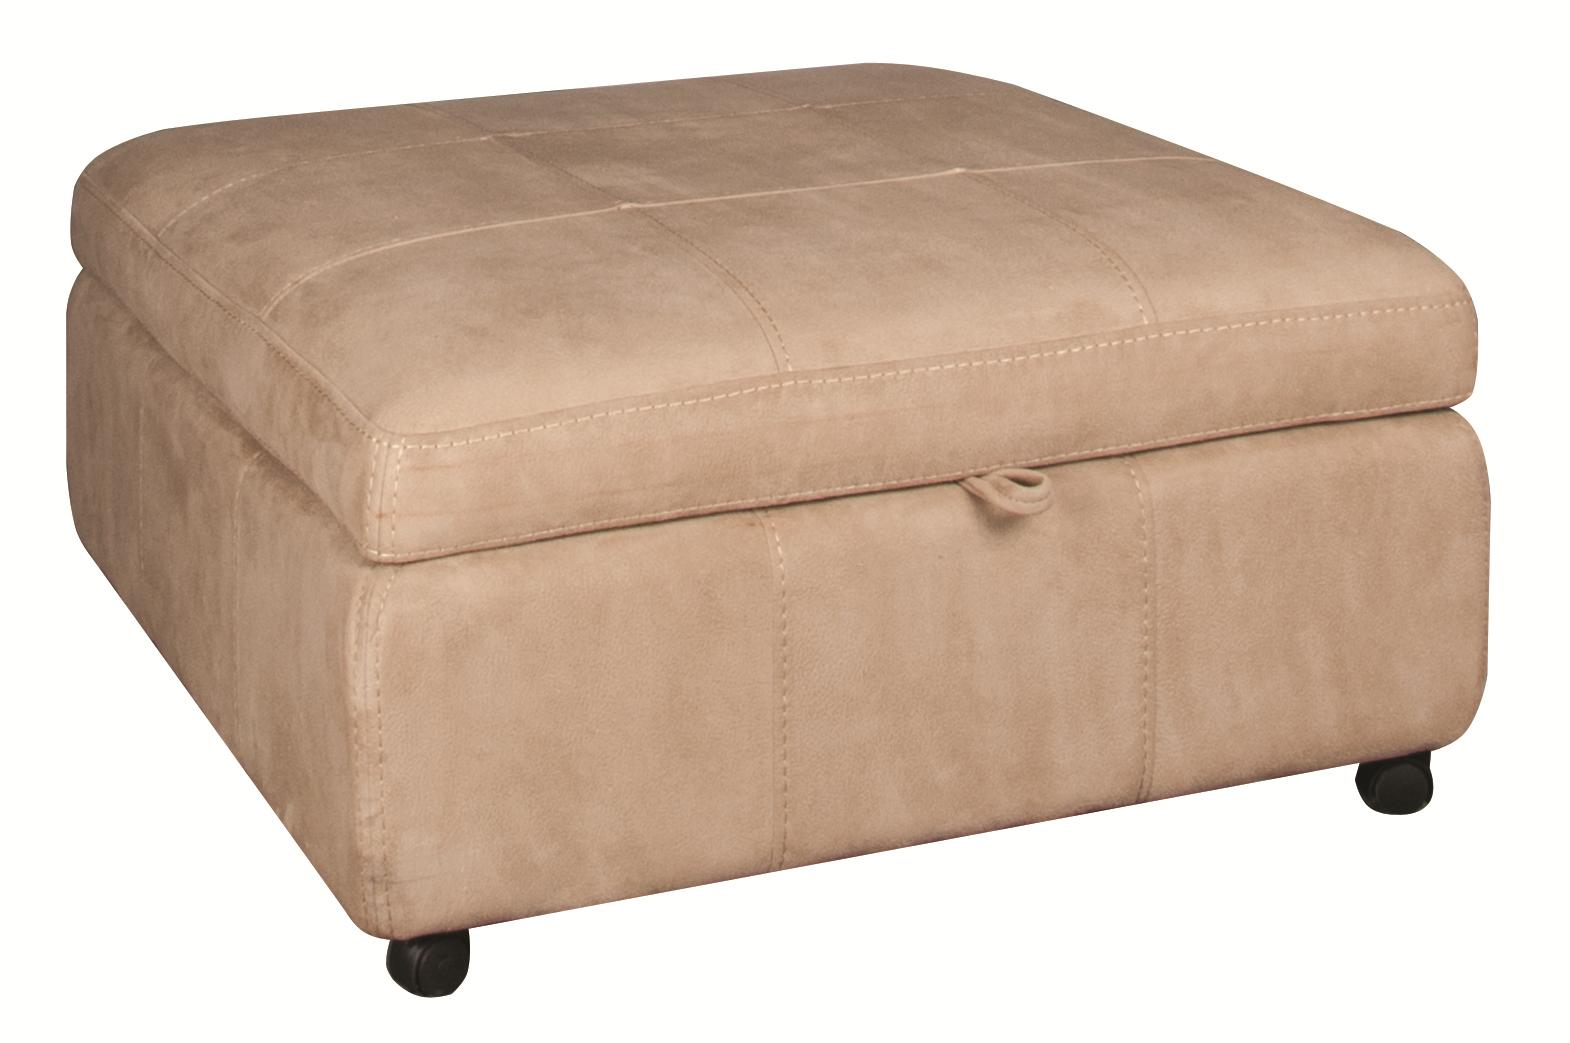 Morris Home Furnishings Sandra Sandra Storage Ottoman - Item Number: 233812901